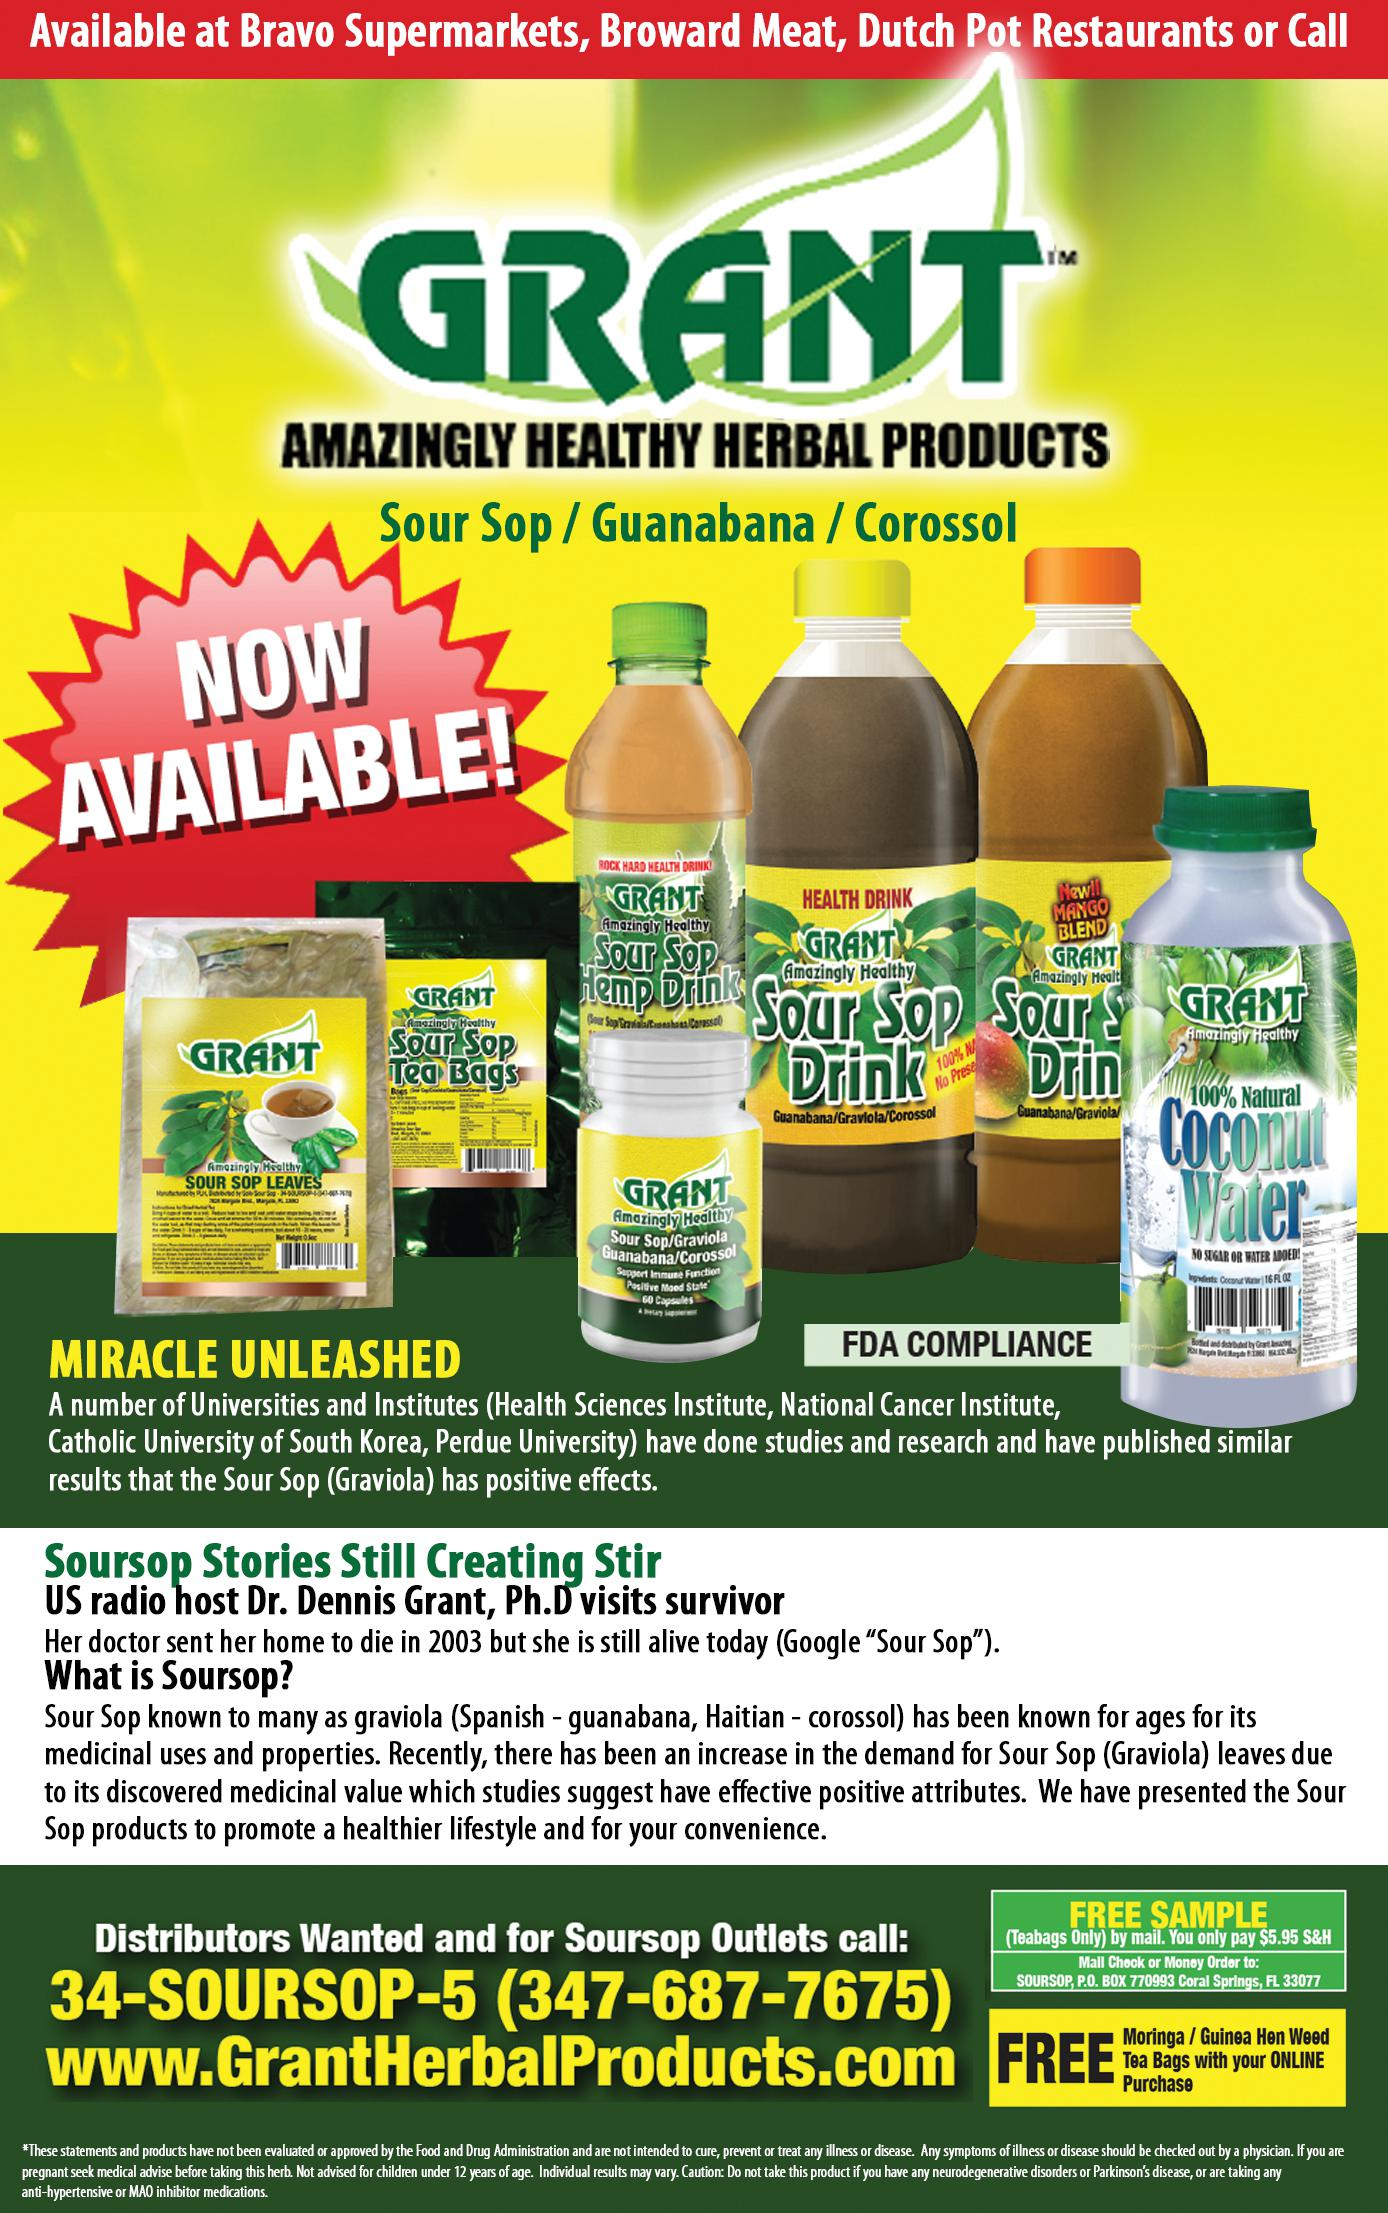 Grant Herbal Products